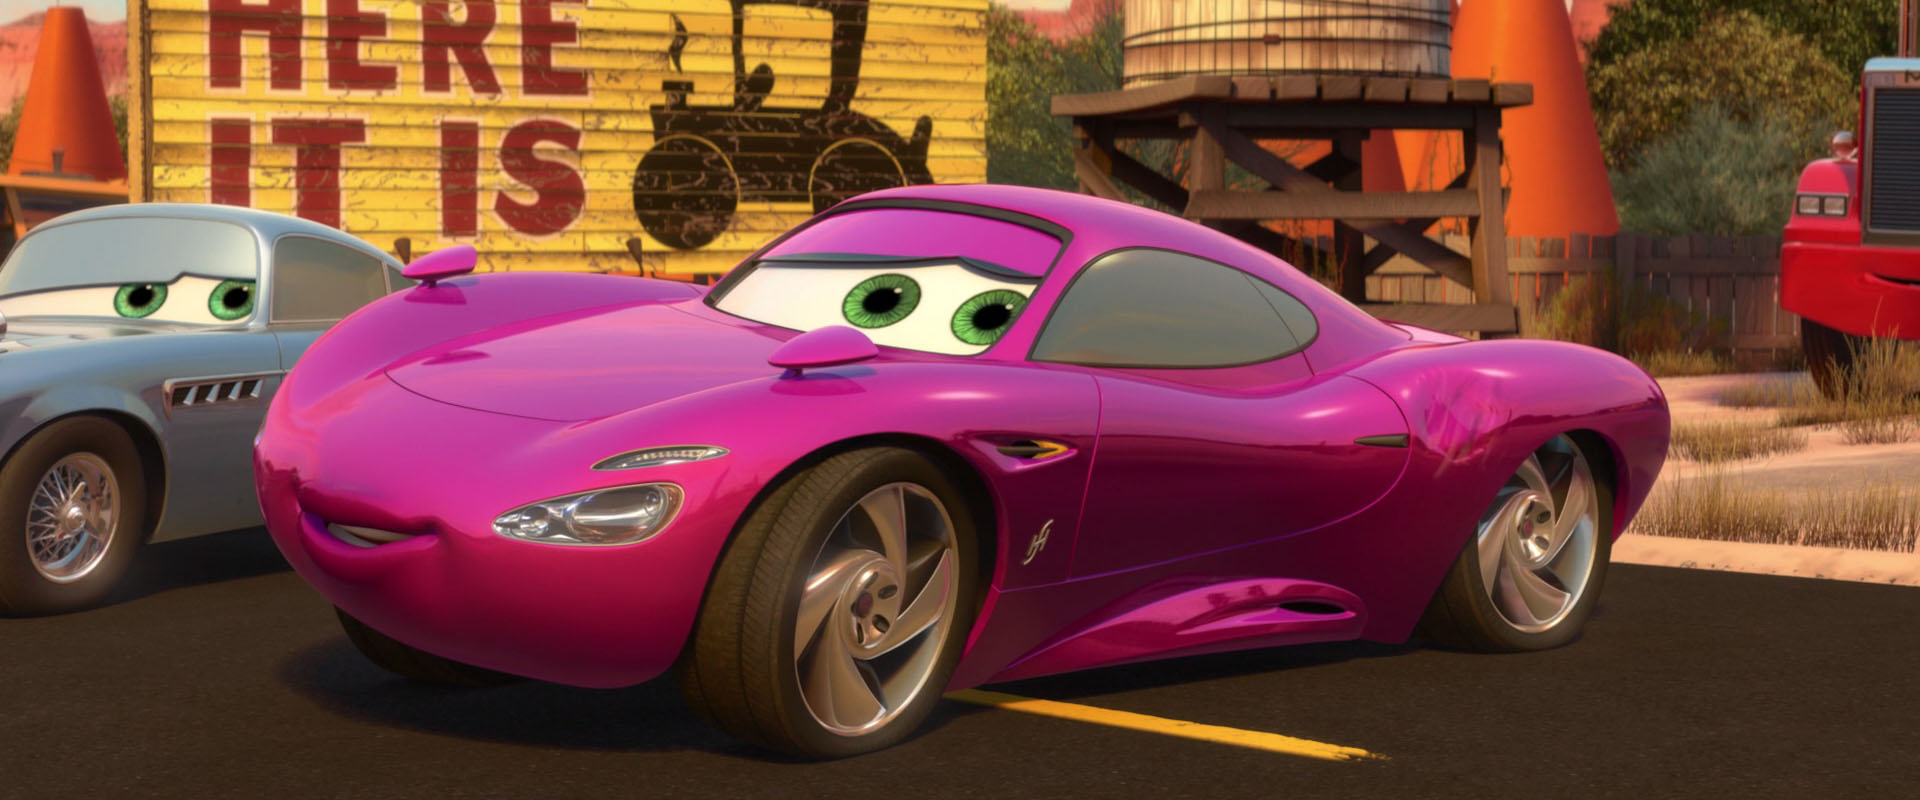 holley-shiftwell-personnage-cars-2-01